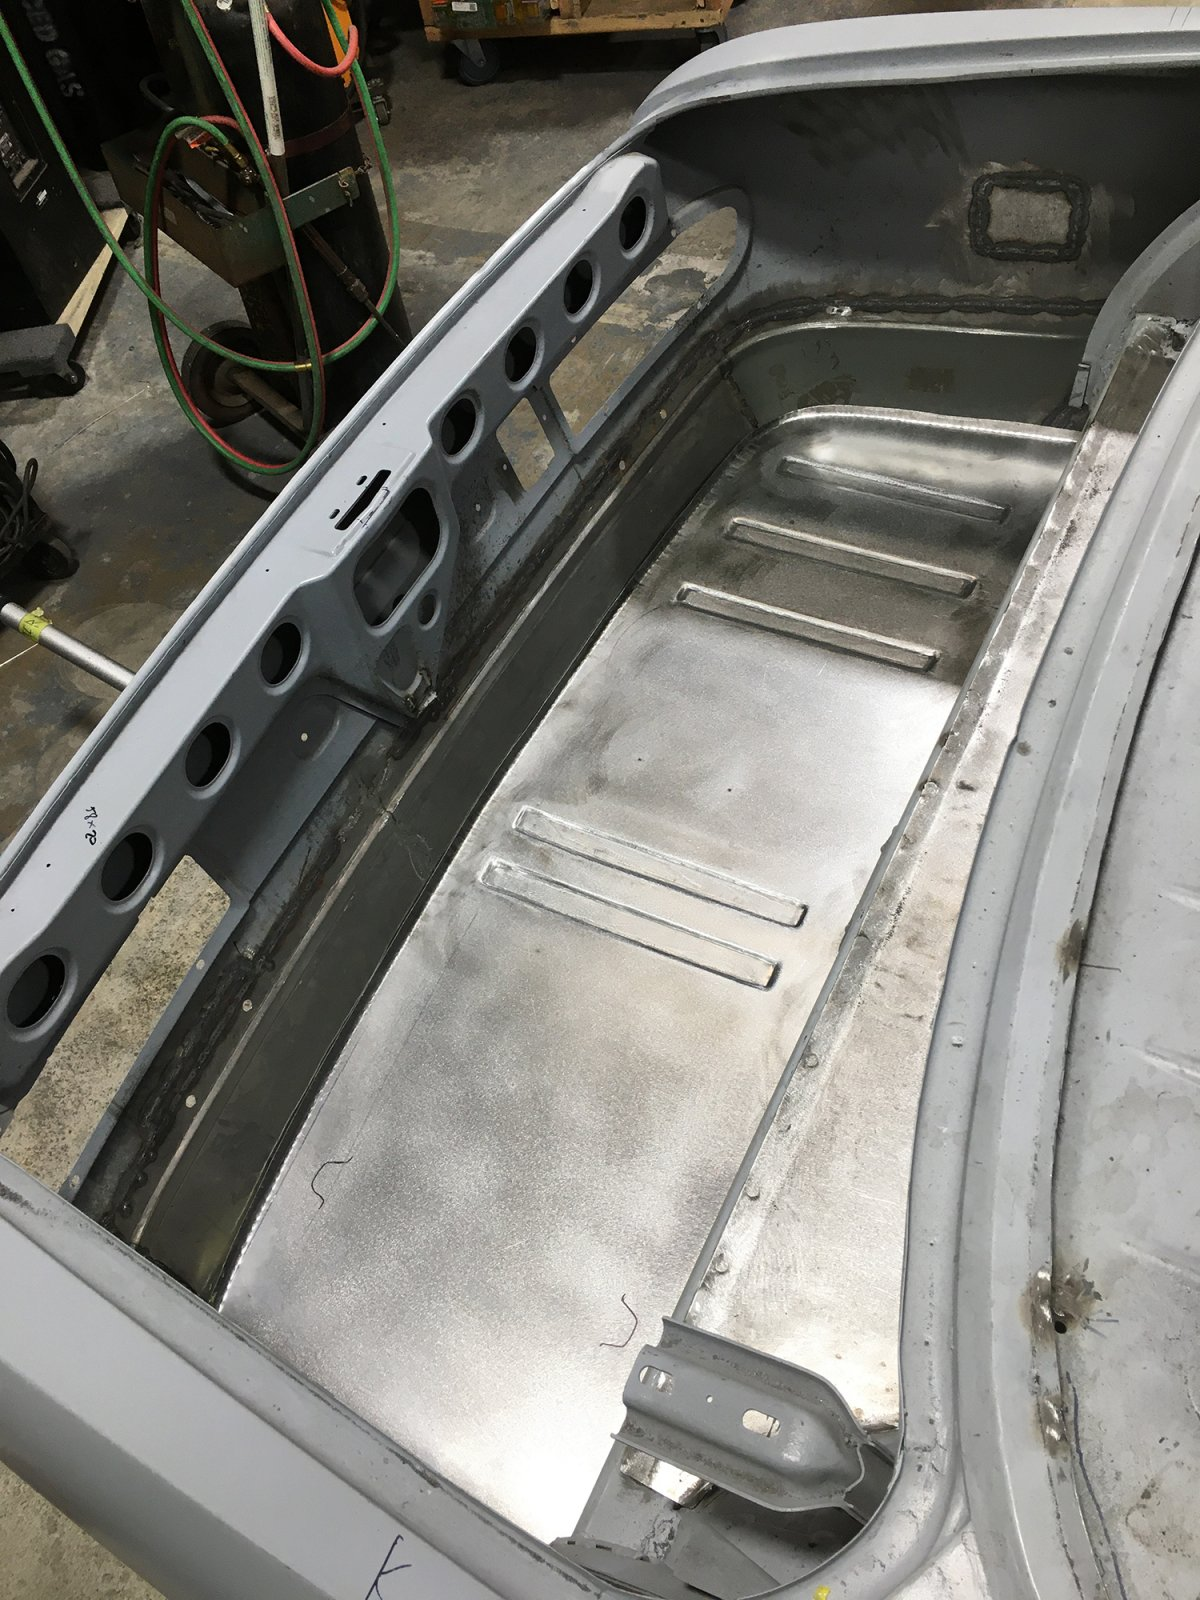 She drops beautifully into the car to create a clean floor. The sections without ribs are where our devices will be mounted.